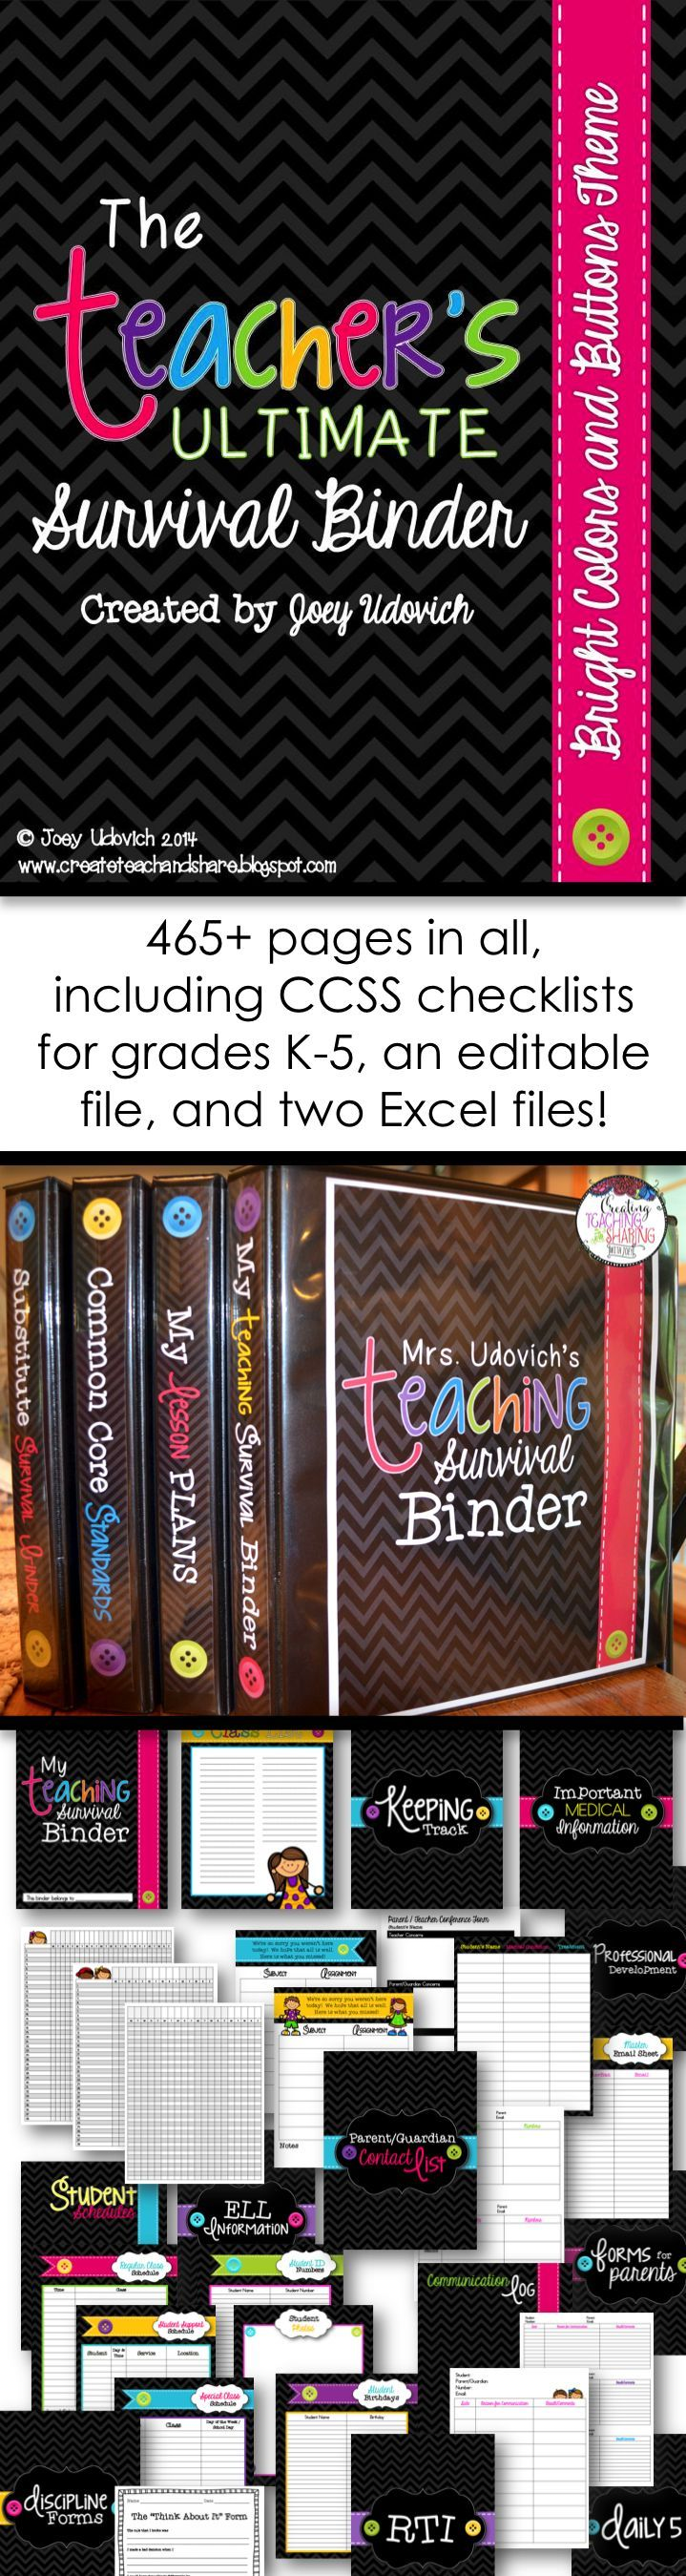 465+ pages of ORGANIZATION for your classroom! This product comes in both a PDF (beautiful for printing) and an editable Power Point. PLUS all of the CCSS for grades K-5, and completely editable excel files for lesson planning and grade book options! There are also 3 tutorials to answer any questions that you may have. Come check this one out! $